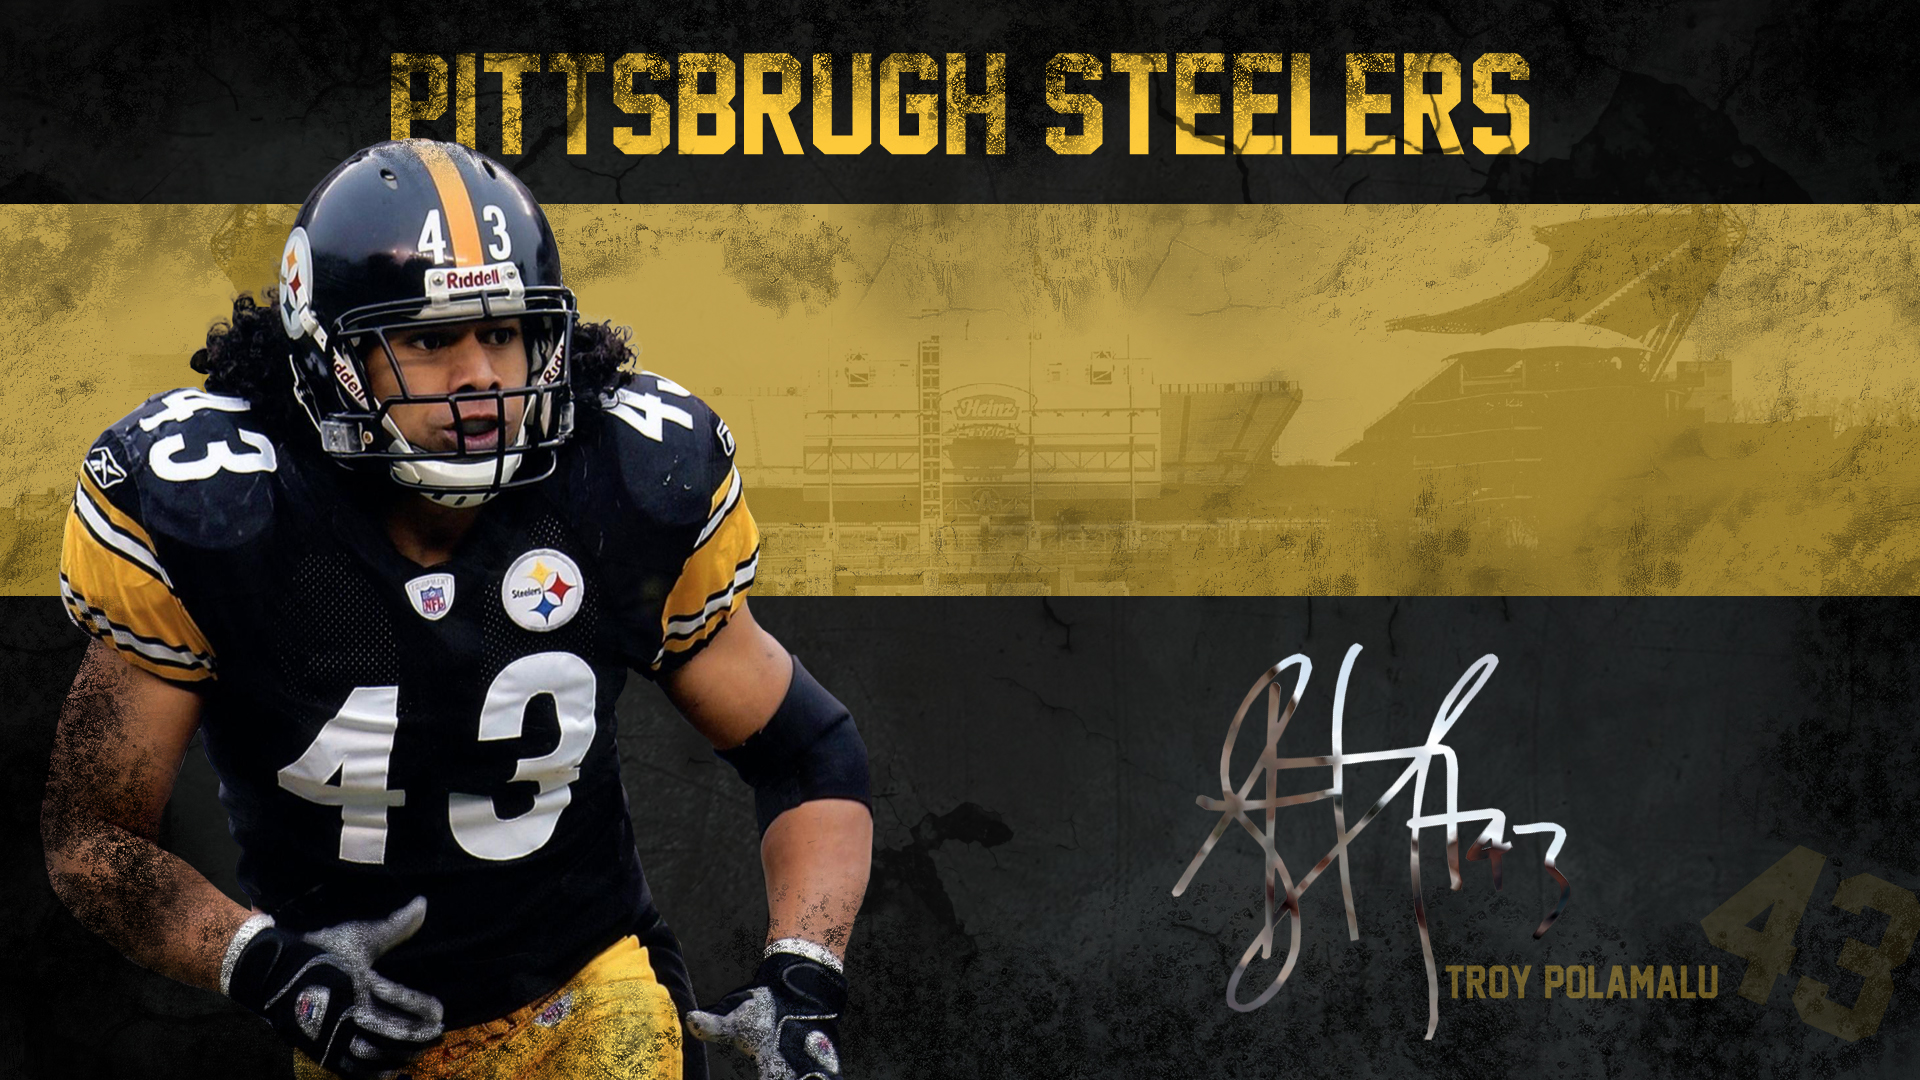 Steelers Wallpaper Calendario